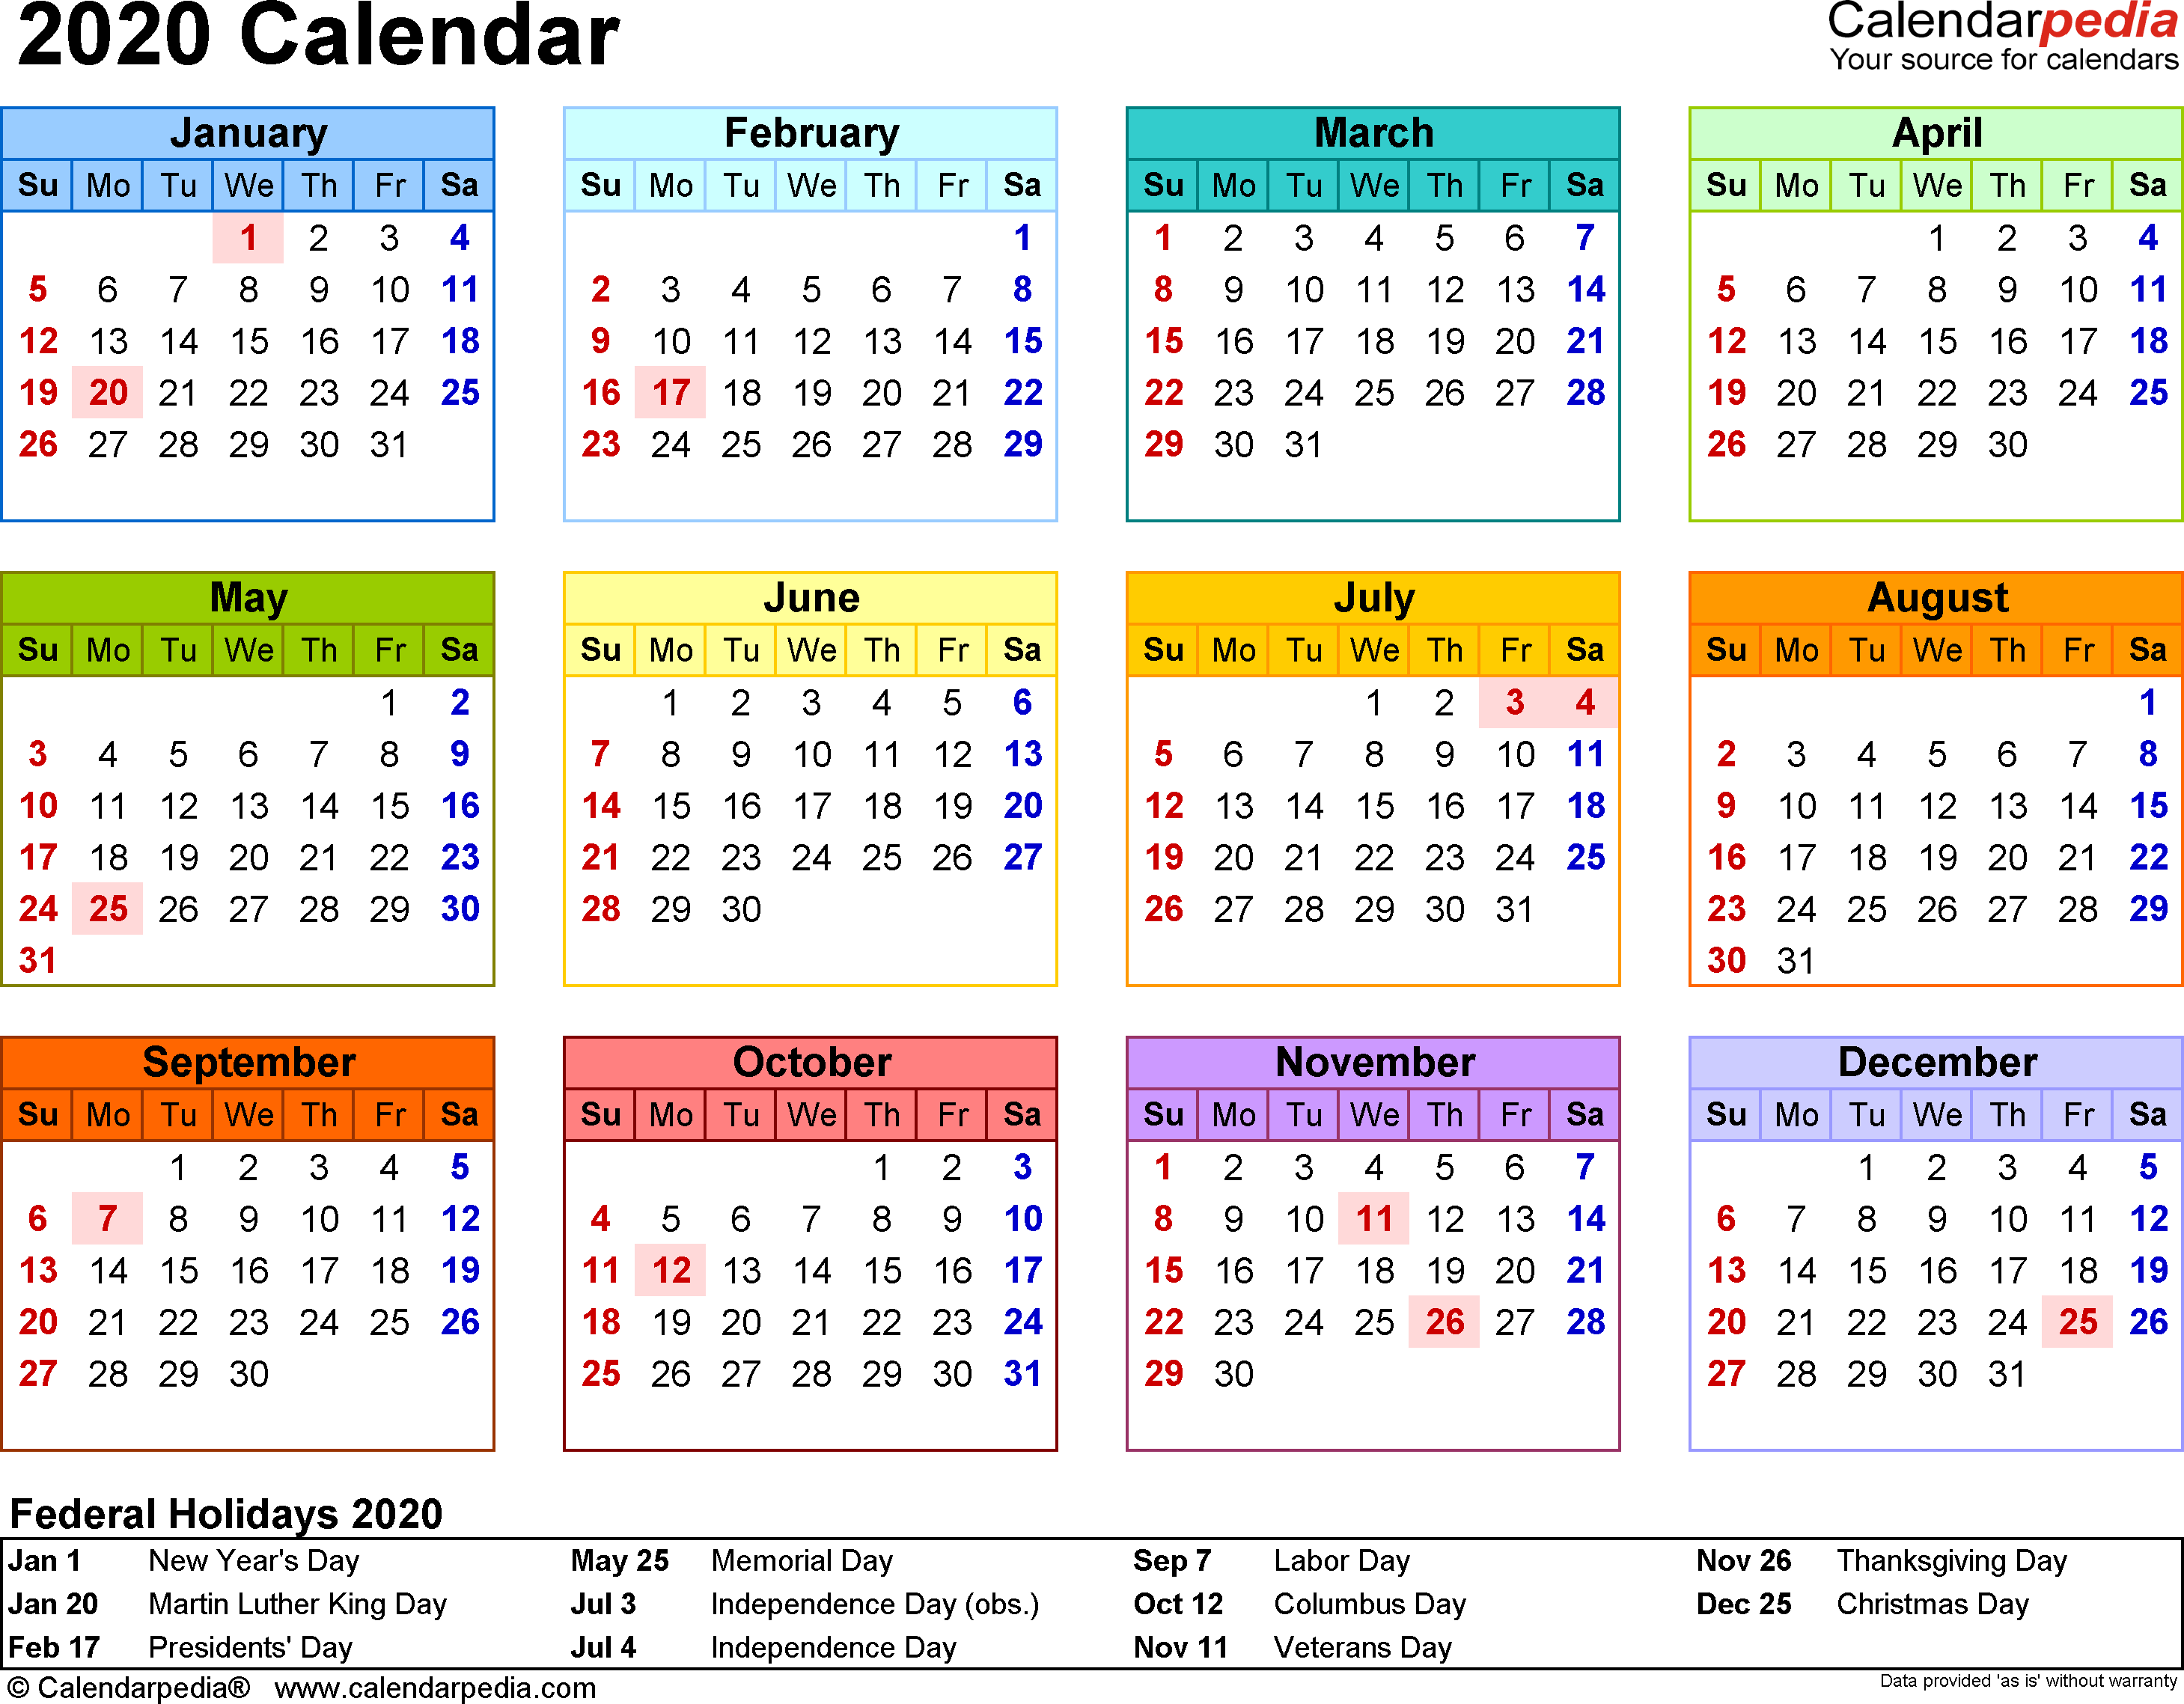 Template 8 2020 Calendar For Word Year At A Glance 1 Page In Color L Calendar 2019 Printable Free Printable Calendar Templates Printable Calendar Template